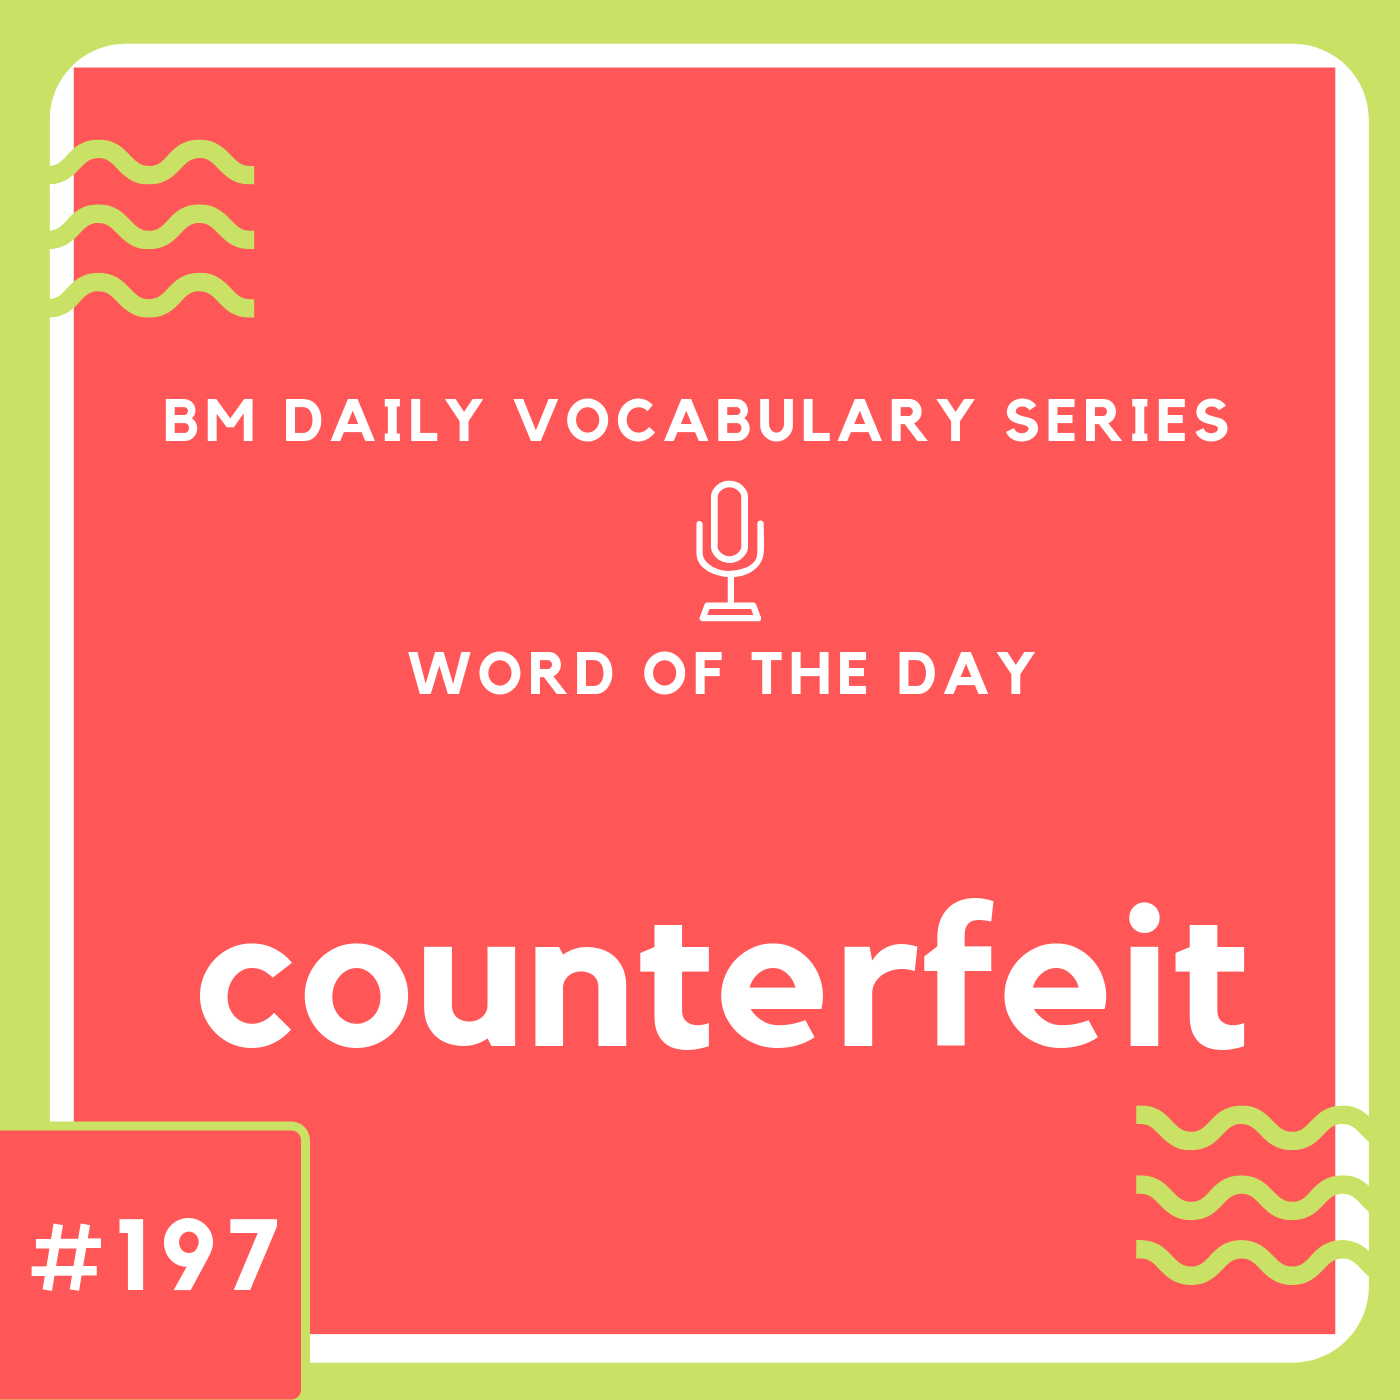 200 BM Daily Vocabulary #197 | counterfeit